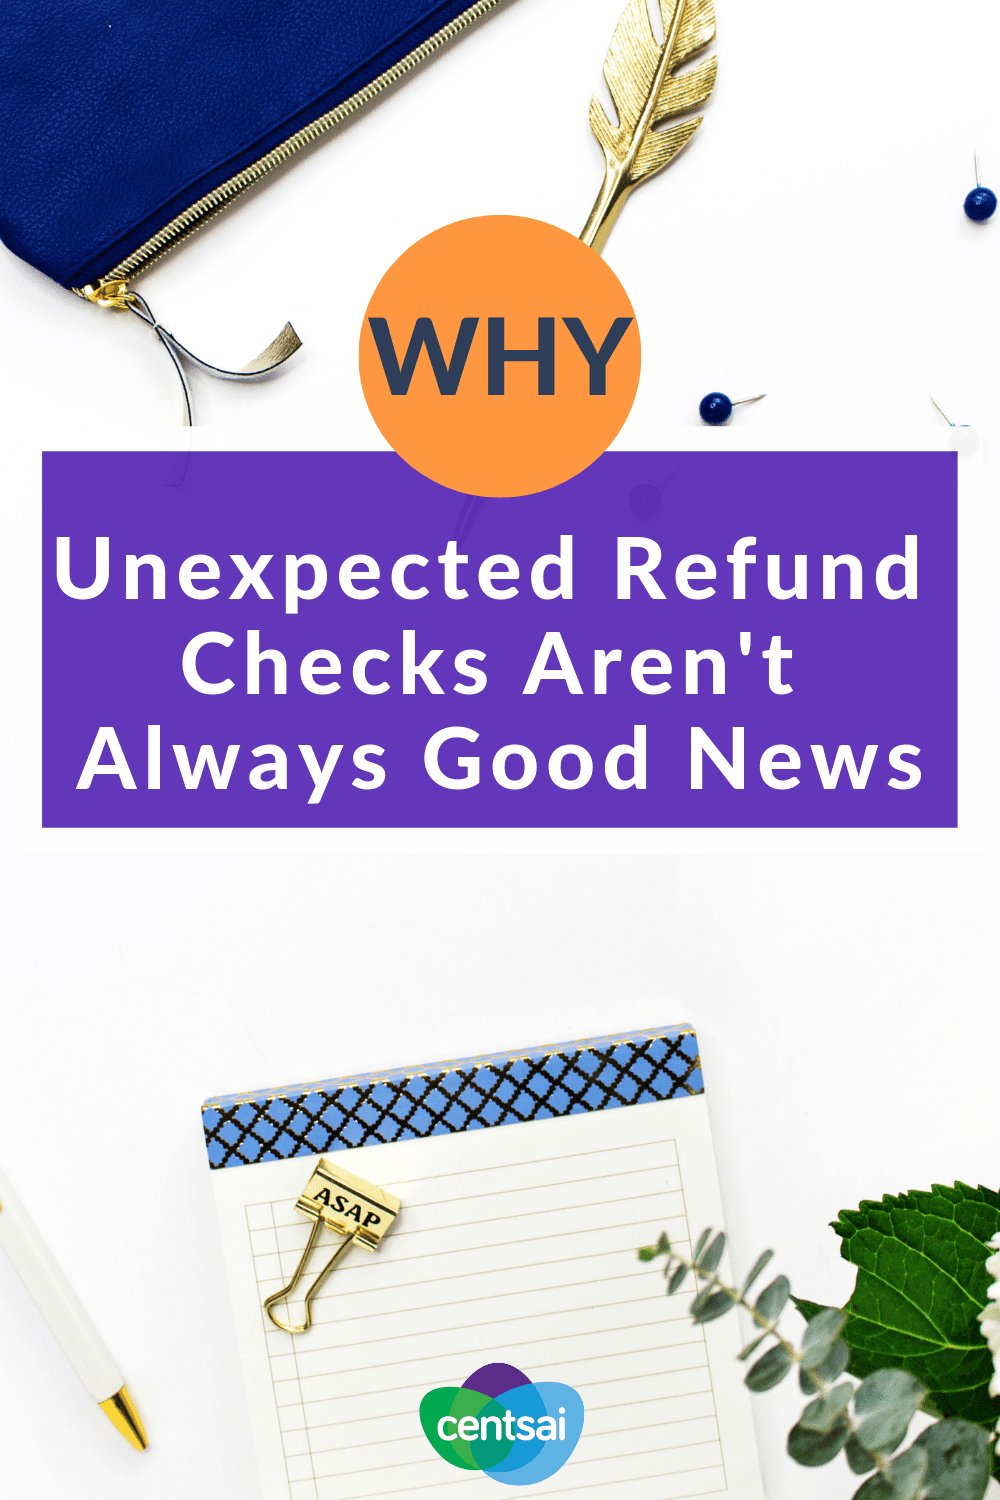 Why Unexpected Refund Checks Aren't Always Good News. You check your mail, and what should you find there but an unexpected homeowners insurance refund. Sound crazy? It's happened. But this is one gift horse you should look in the mouth. That check may be there for the wrong reasons. #insurance #homeowners #checks #financialplanning #insuranceblogs